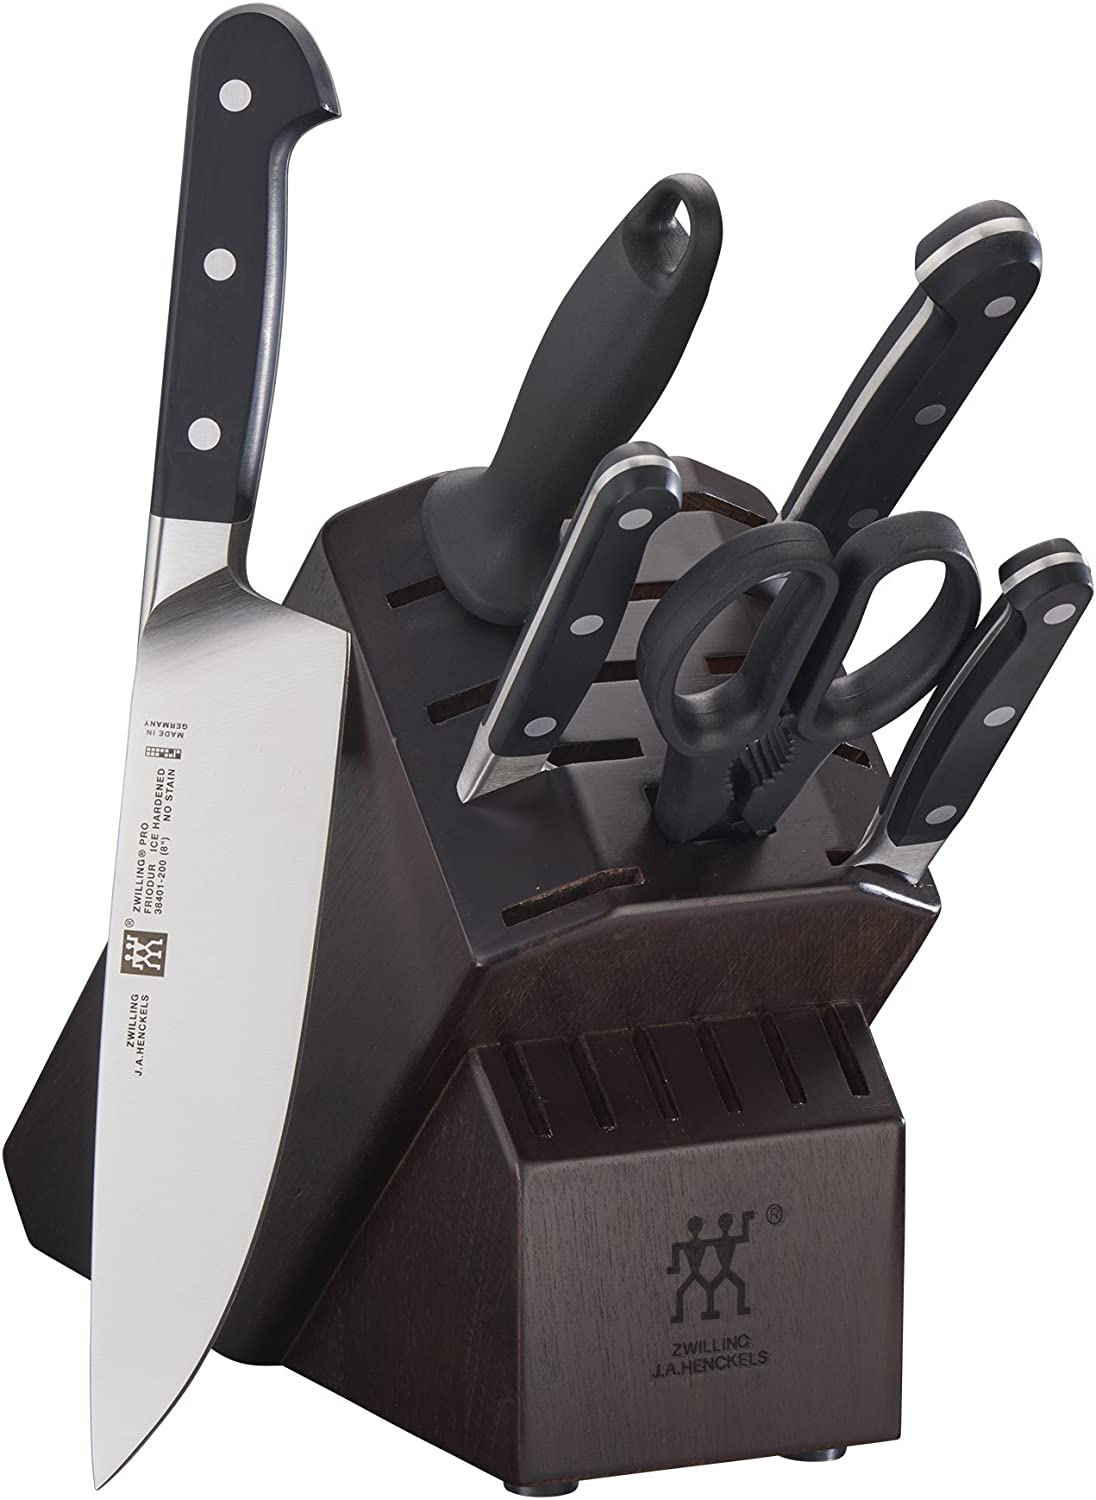 ZWILLING Quantity limited Pro 7-pc Knife Special price Set - Block Walnut